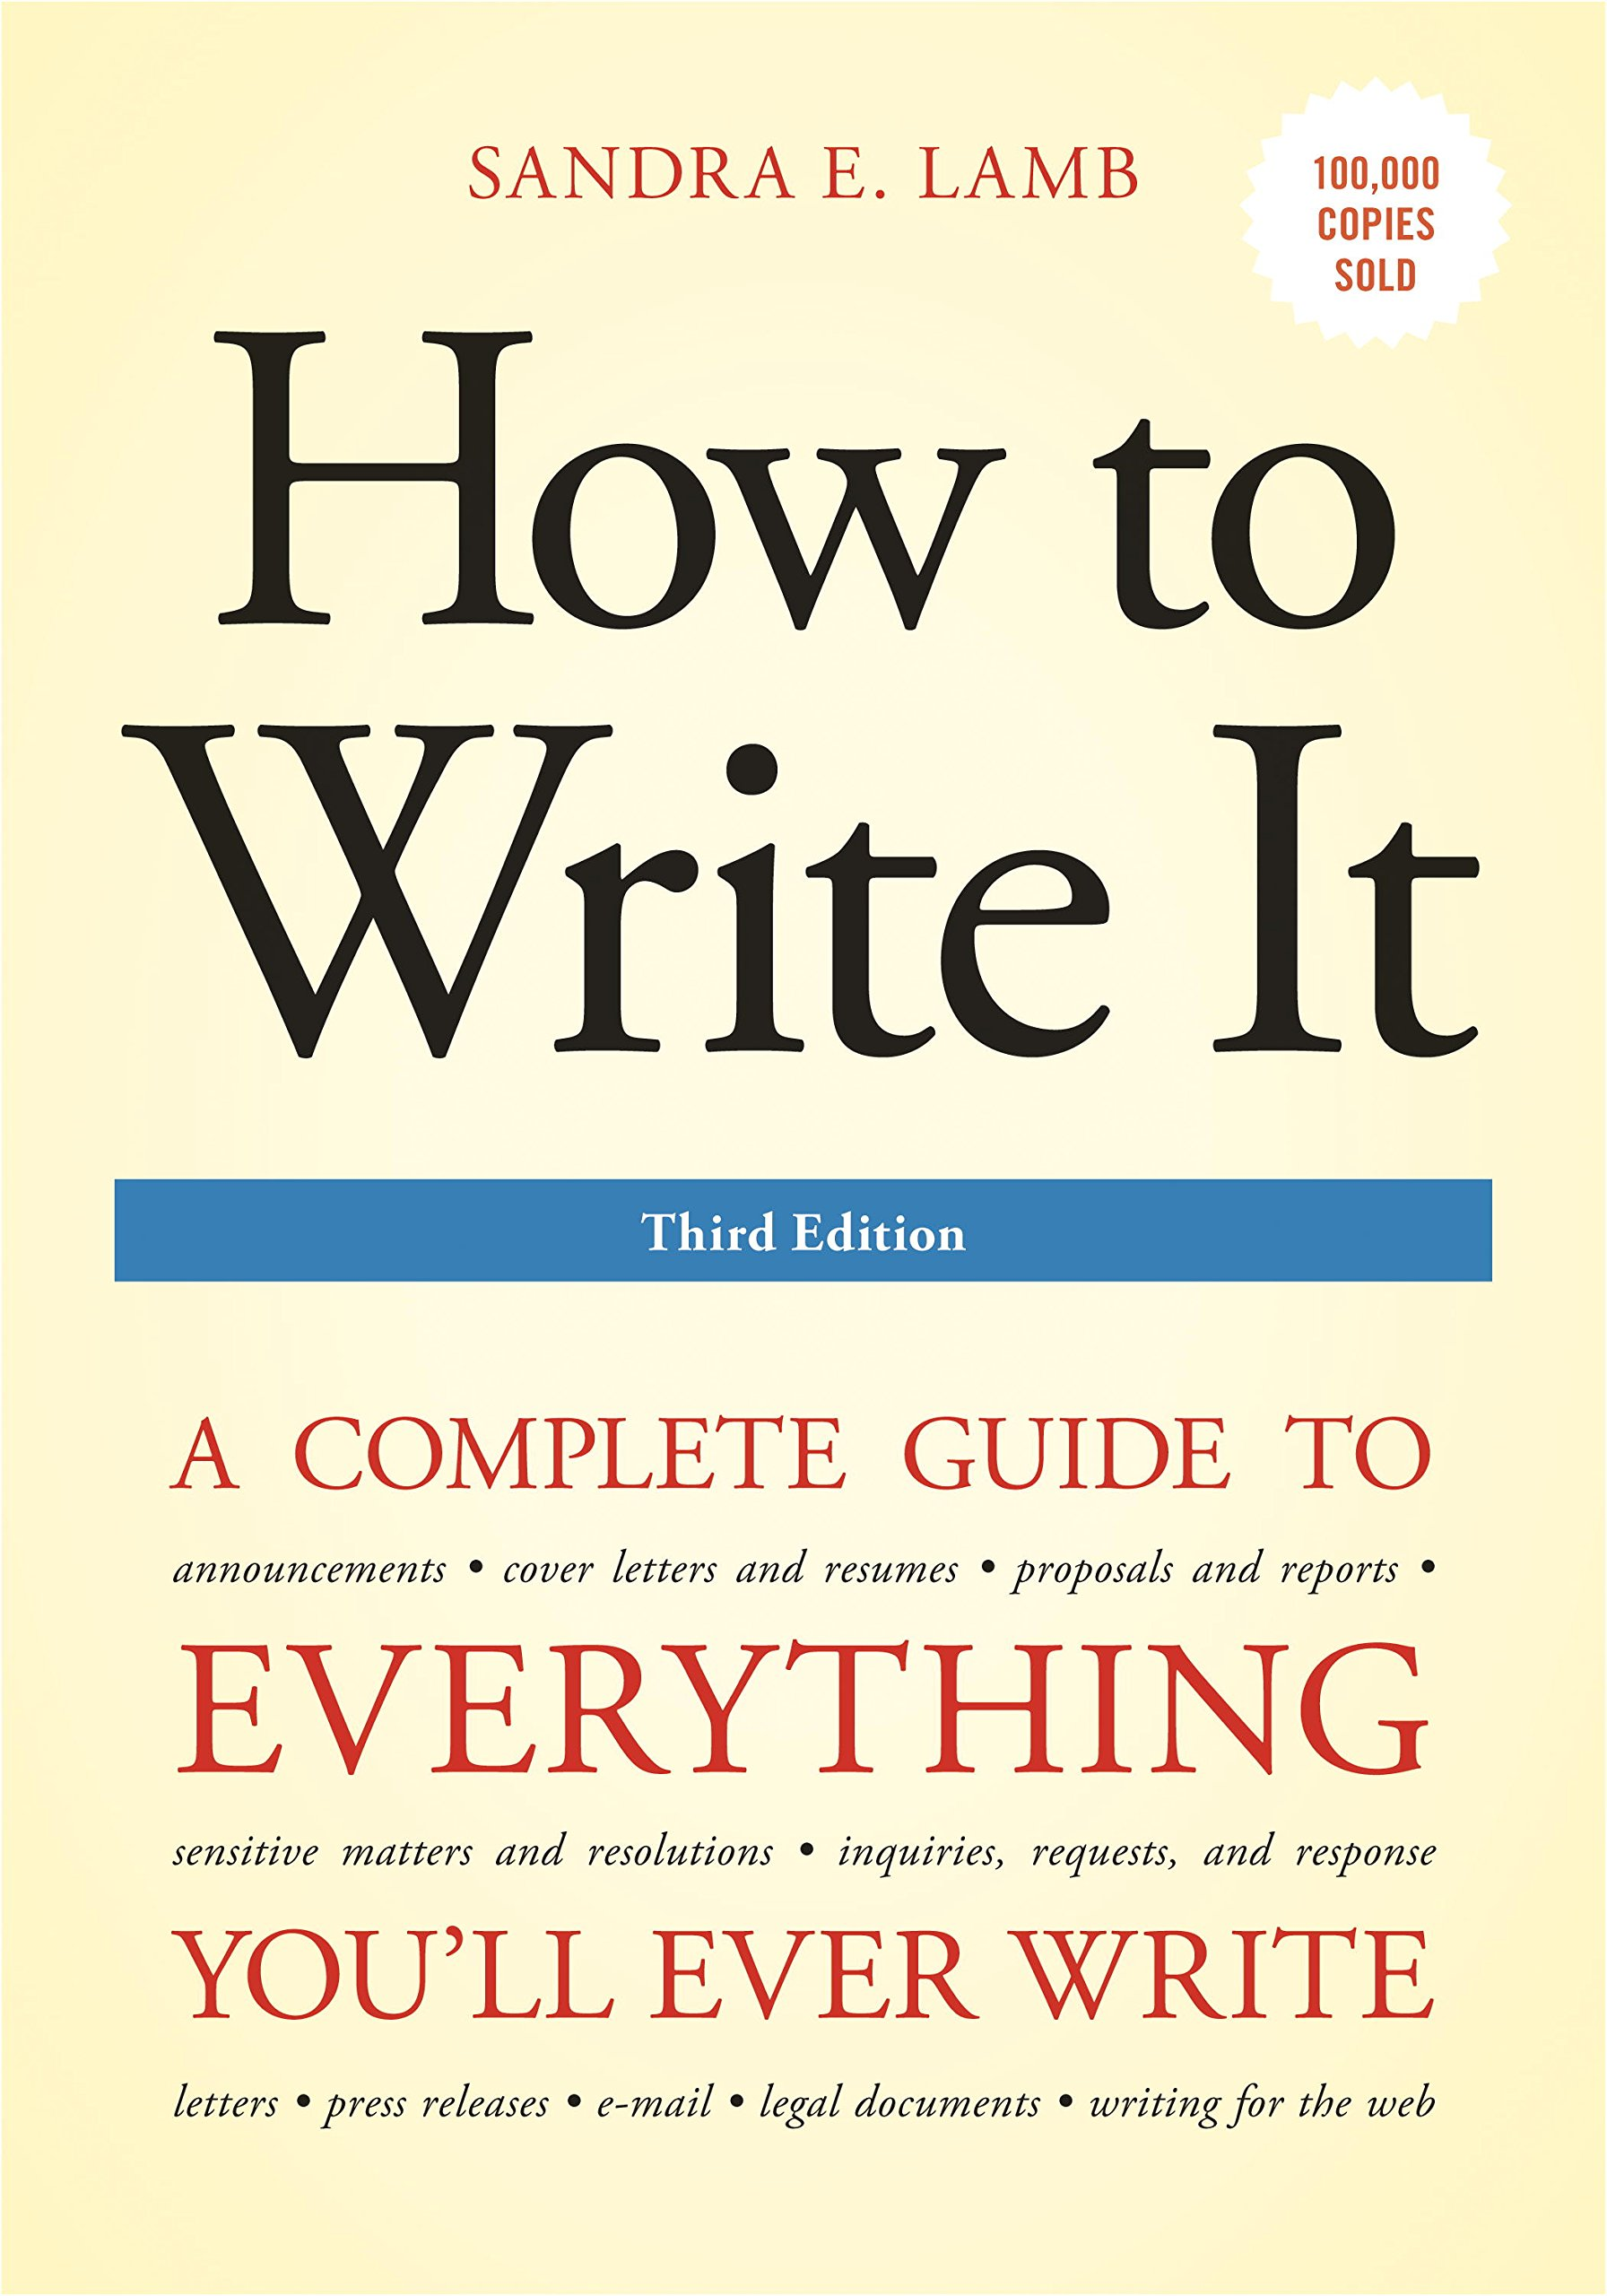 How to Write It, Third Edition: A Complete Guide to Everything You